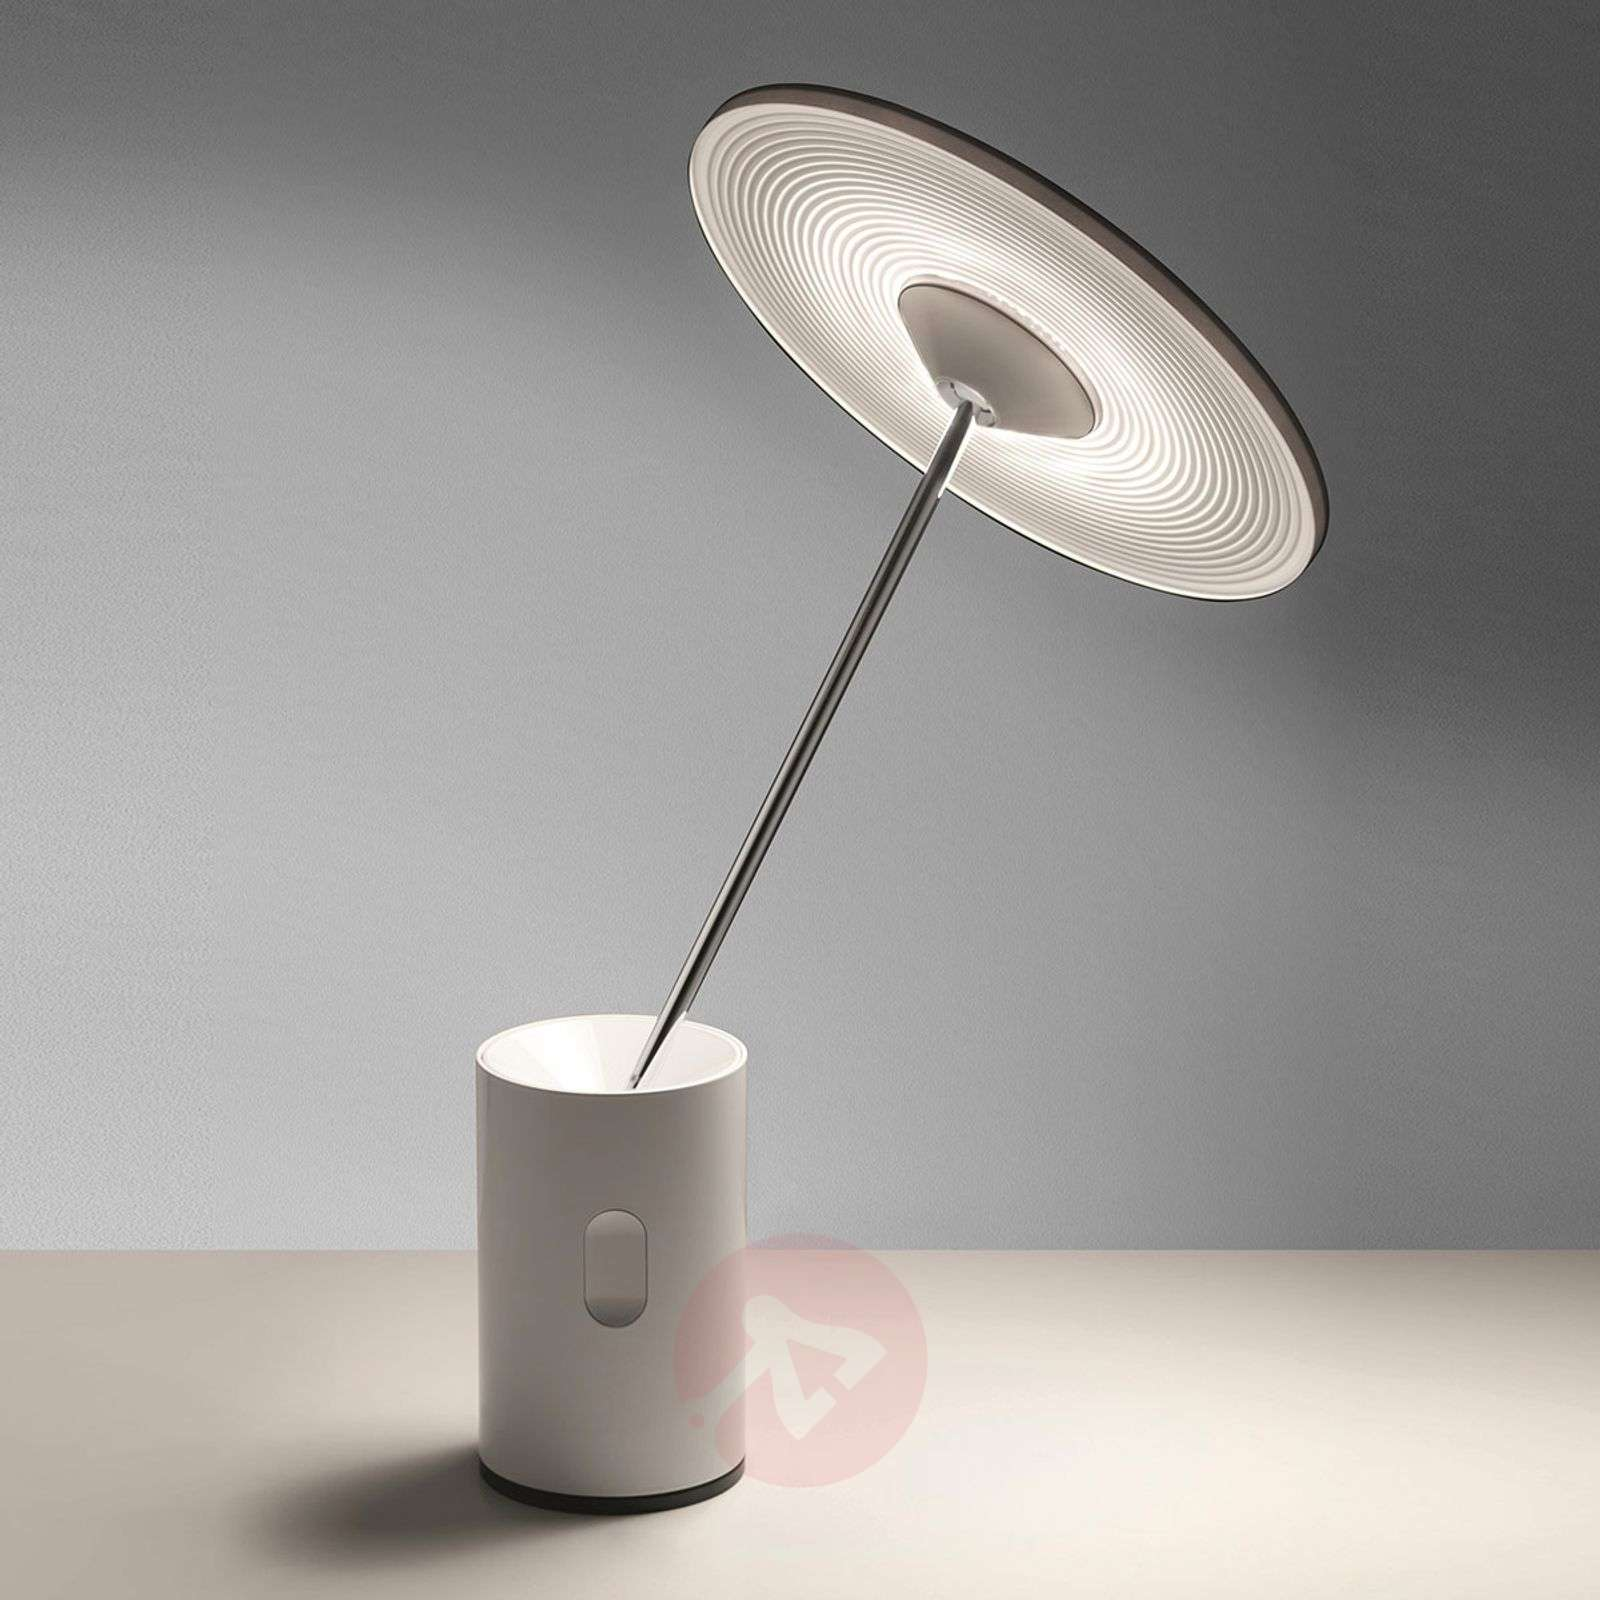 Artemide Sisifo LED table lamp in white-1060133-01